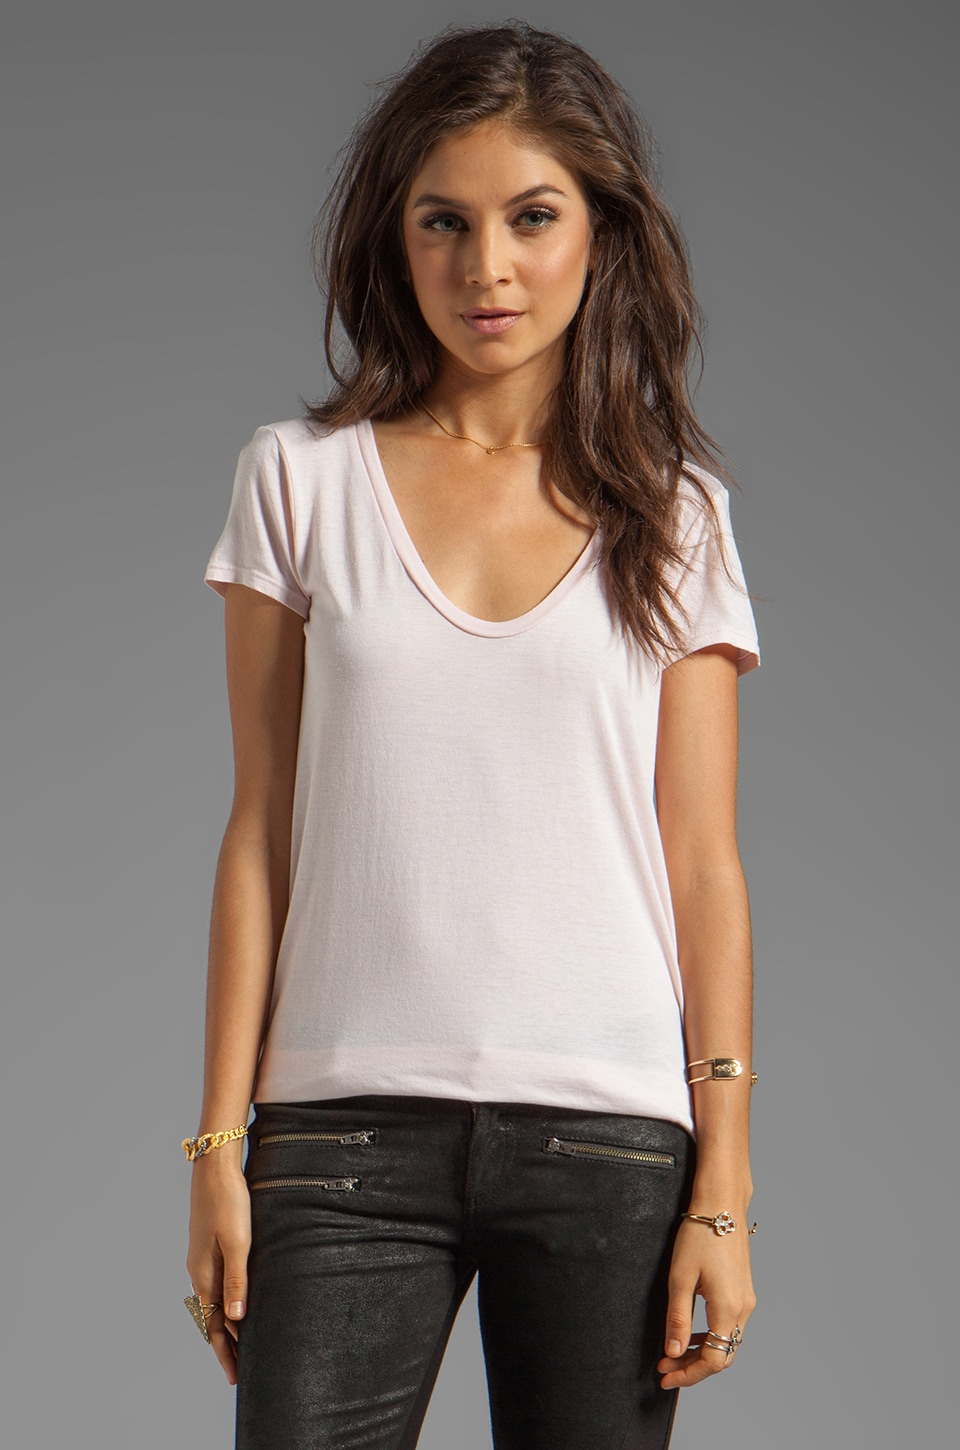 Splendid Light Jersey Short Sleeve Tee in Shell Pink